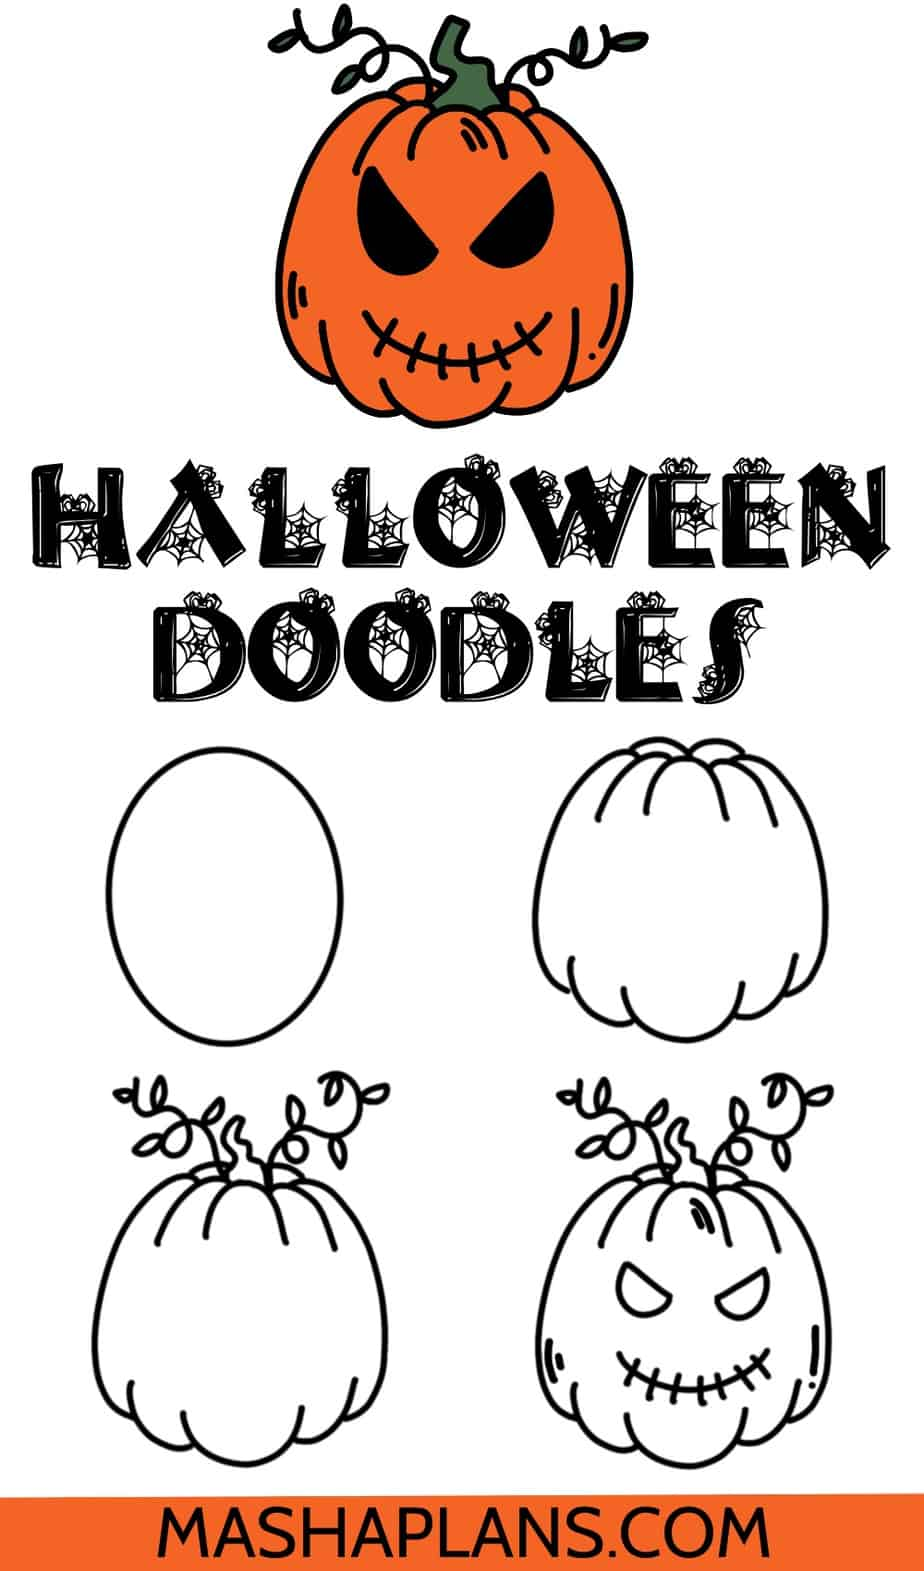 Halloween Bullet Journal Doodles, Pumpkin | Masha Plans